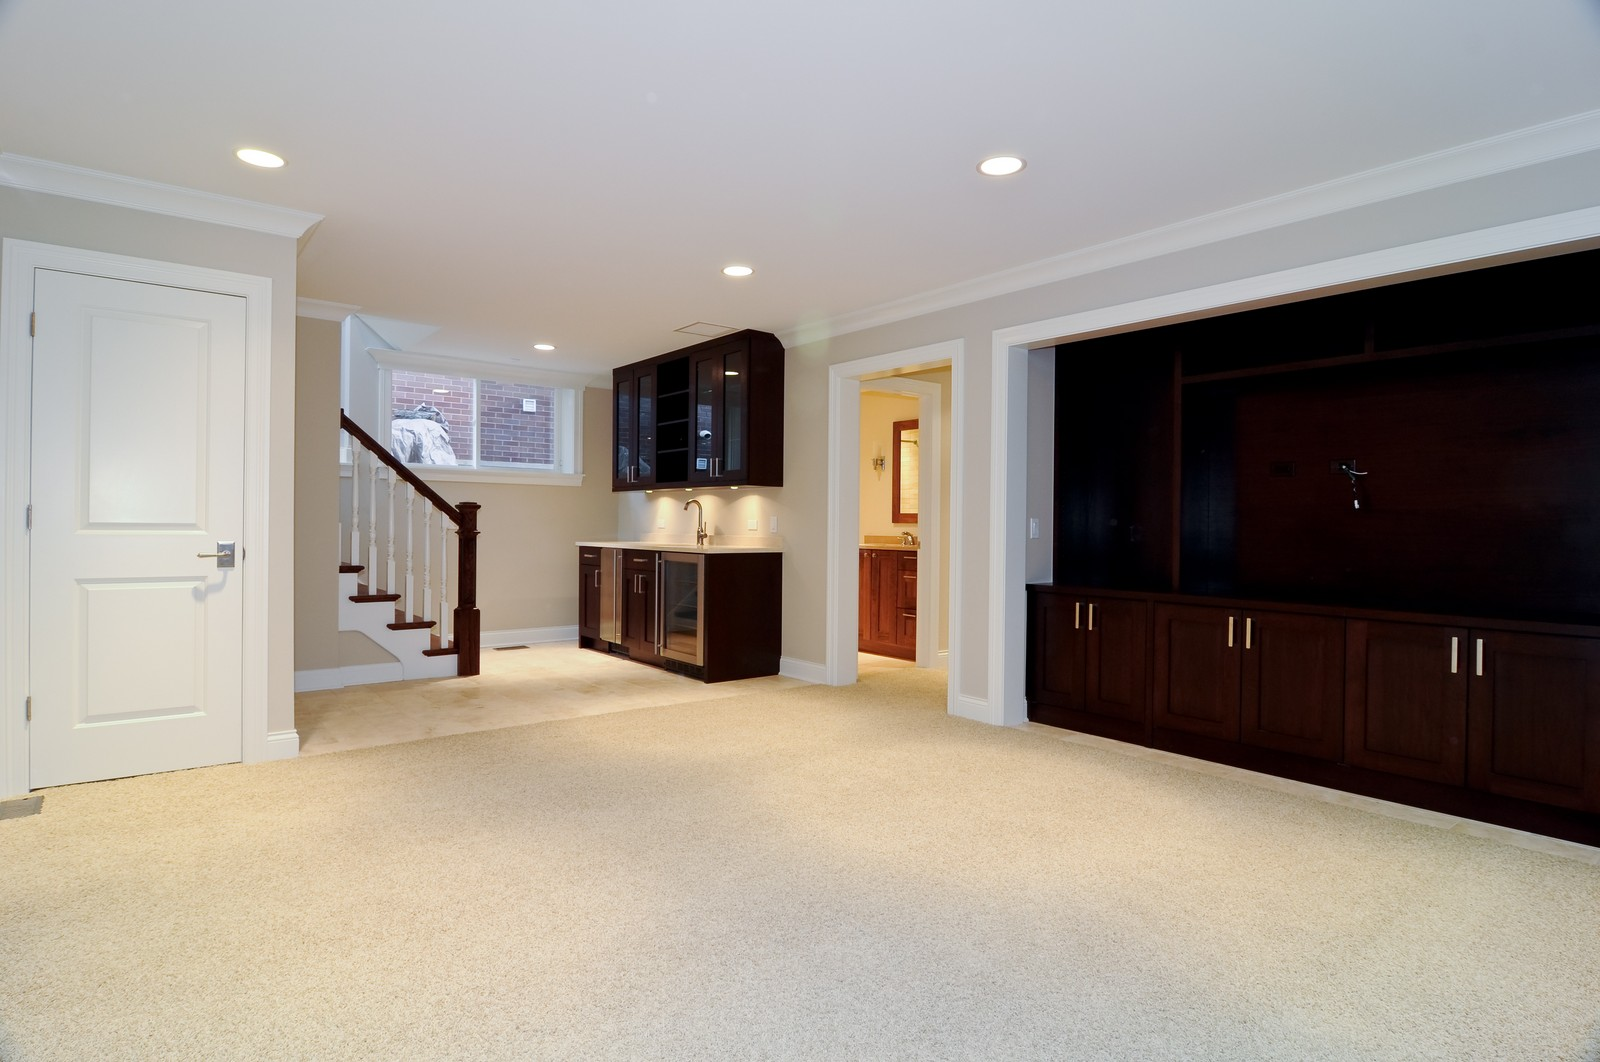 Real Estate Photography - 3845 N Paulina St, Chicago, IL, 60613 - Lower Level